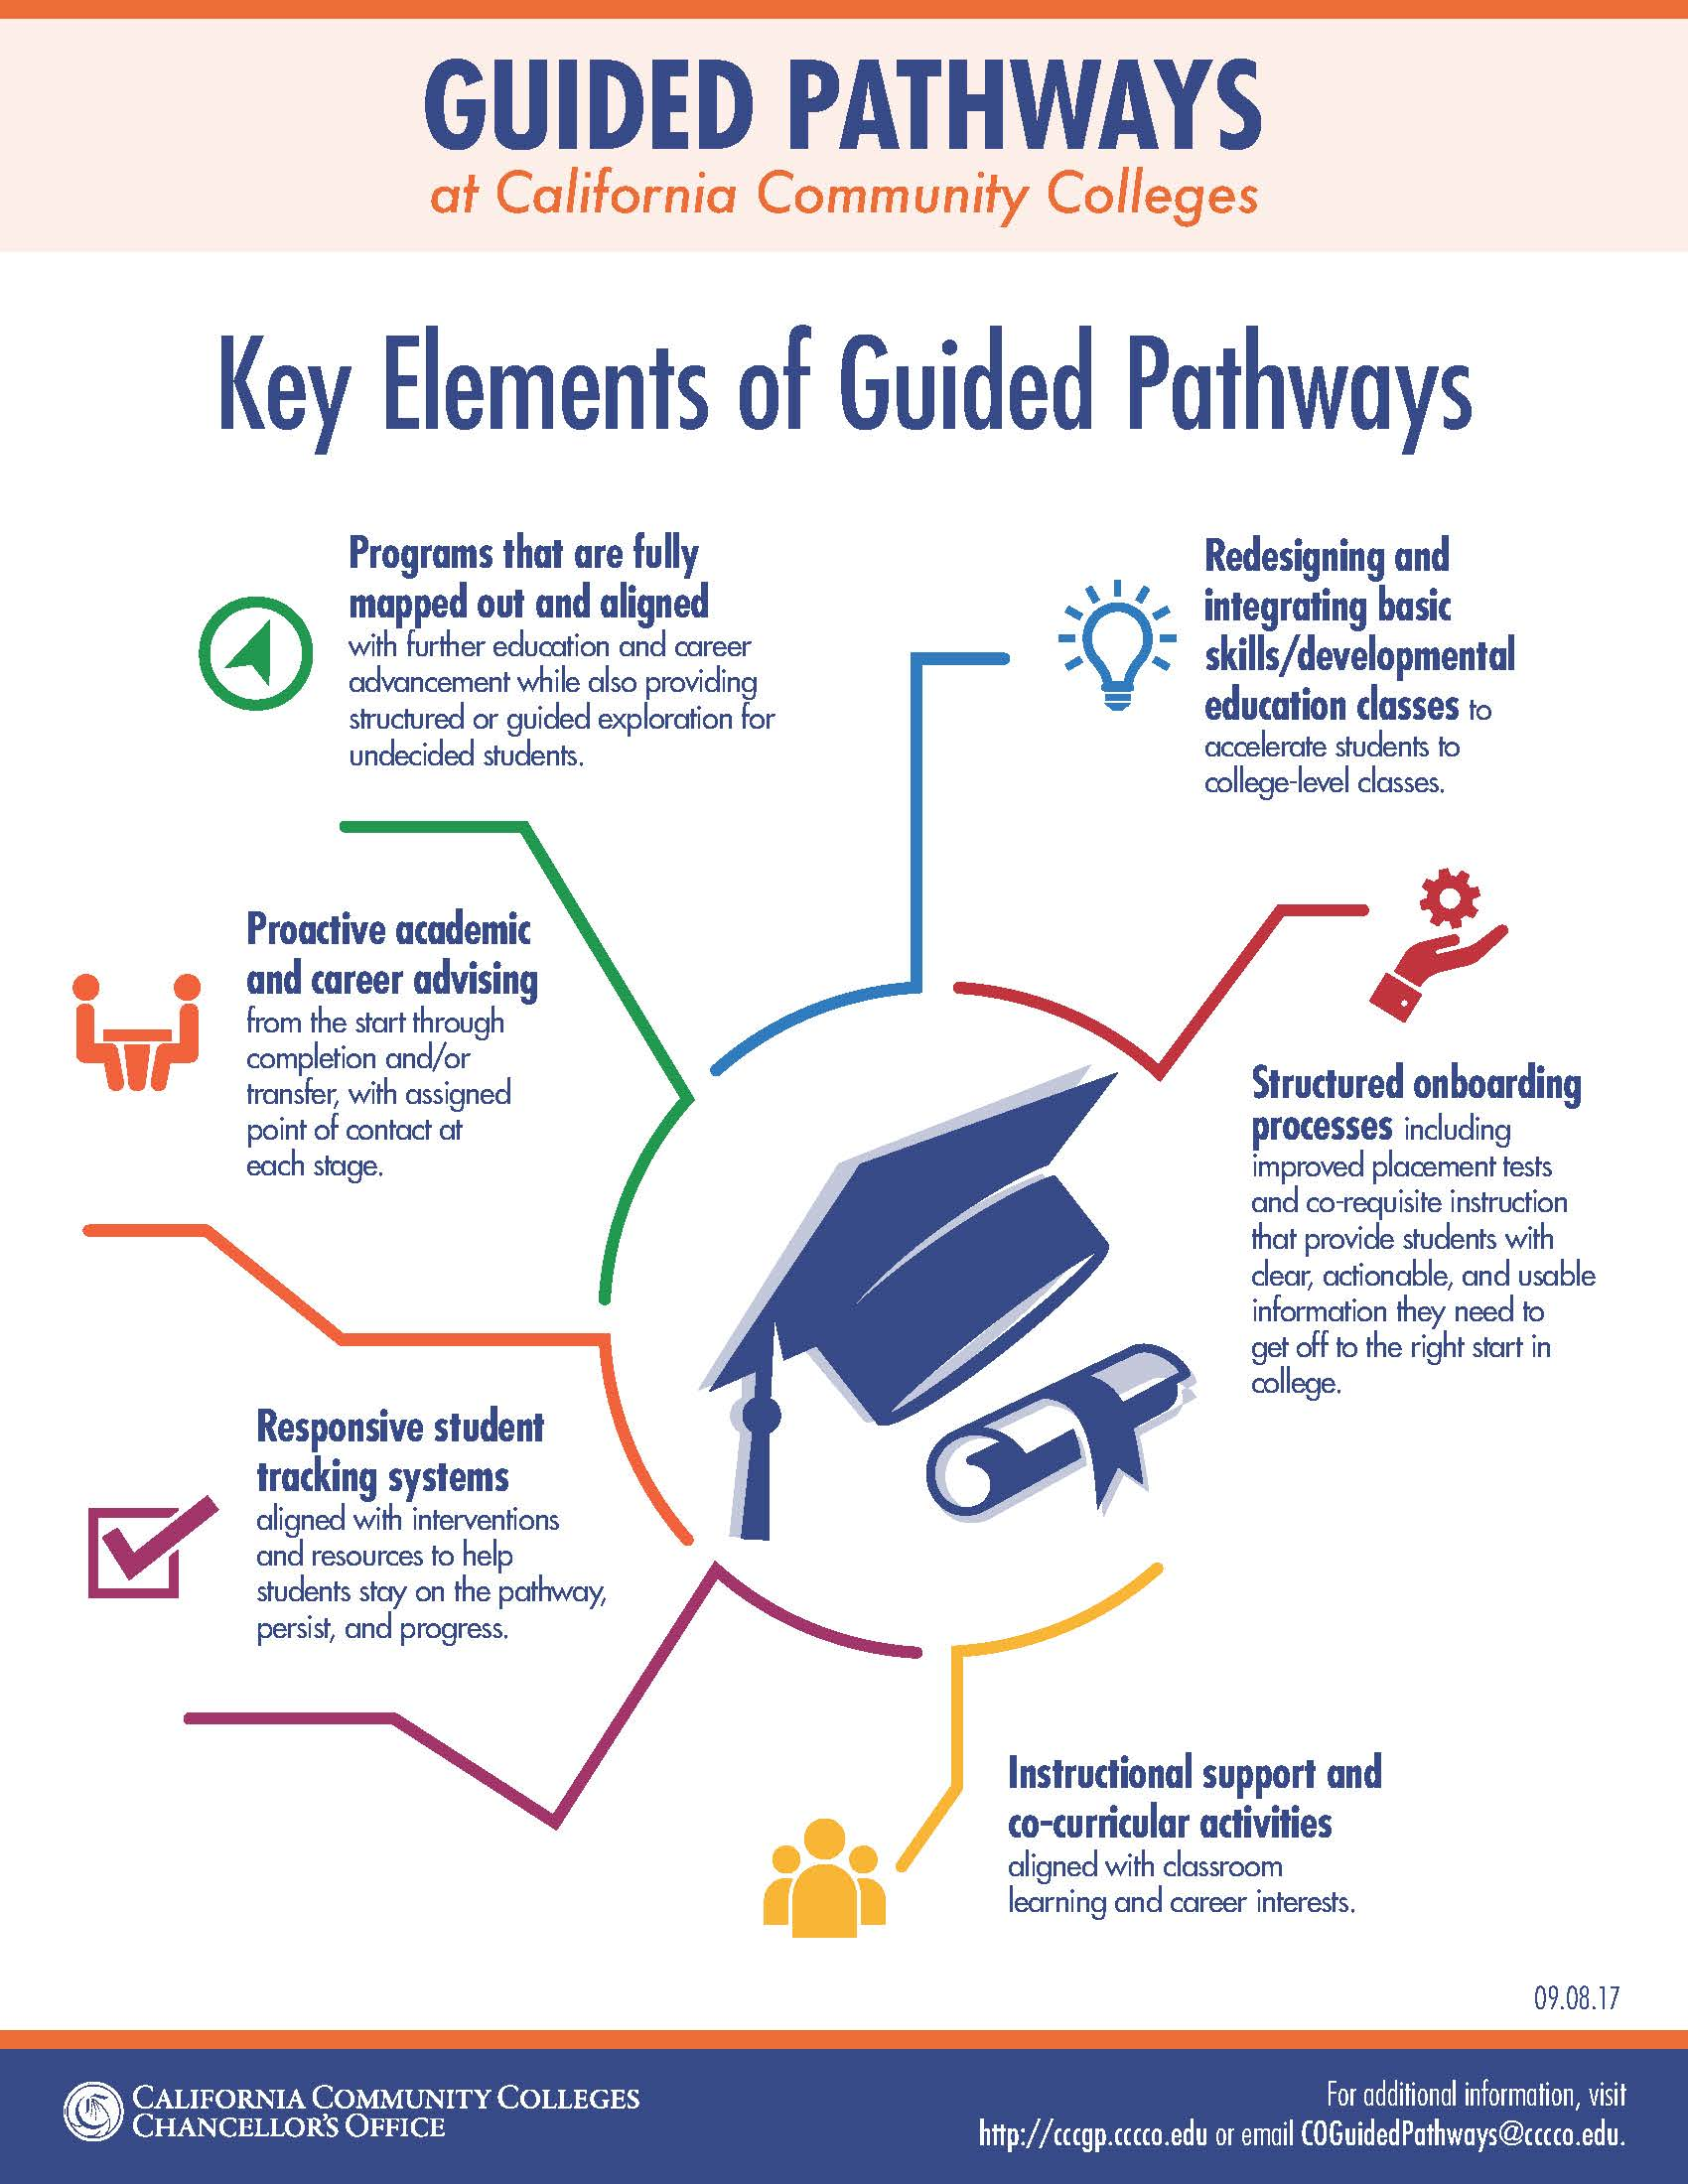 description of six key elements of guided pathways